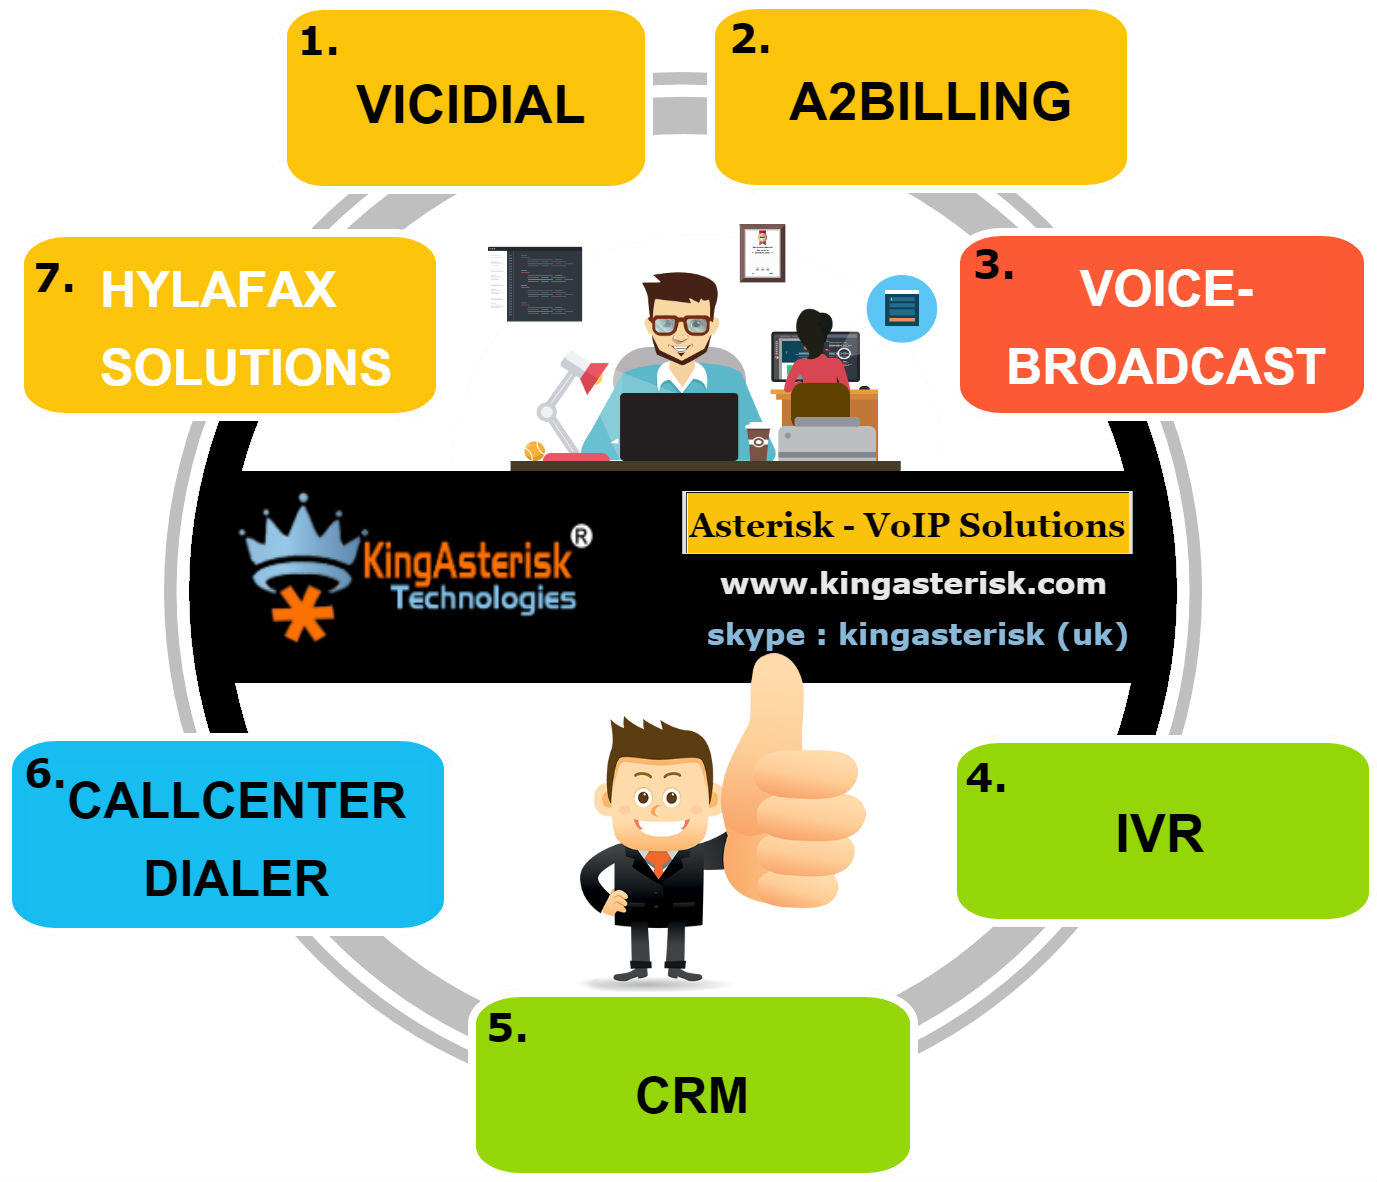 Asterisk-Voip Solutions